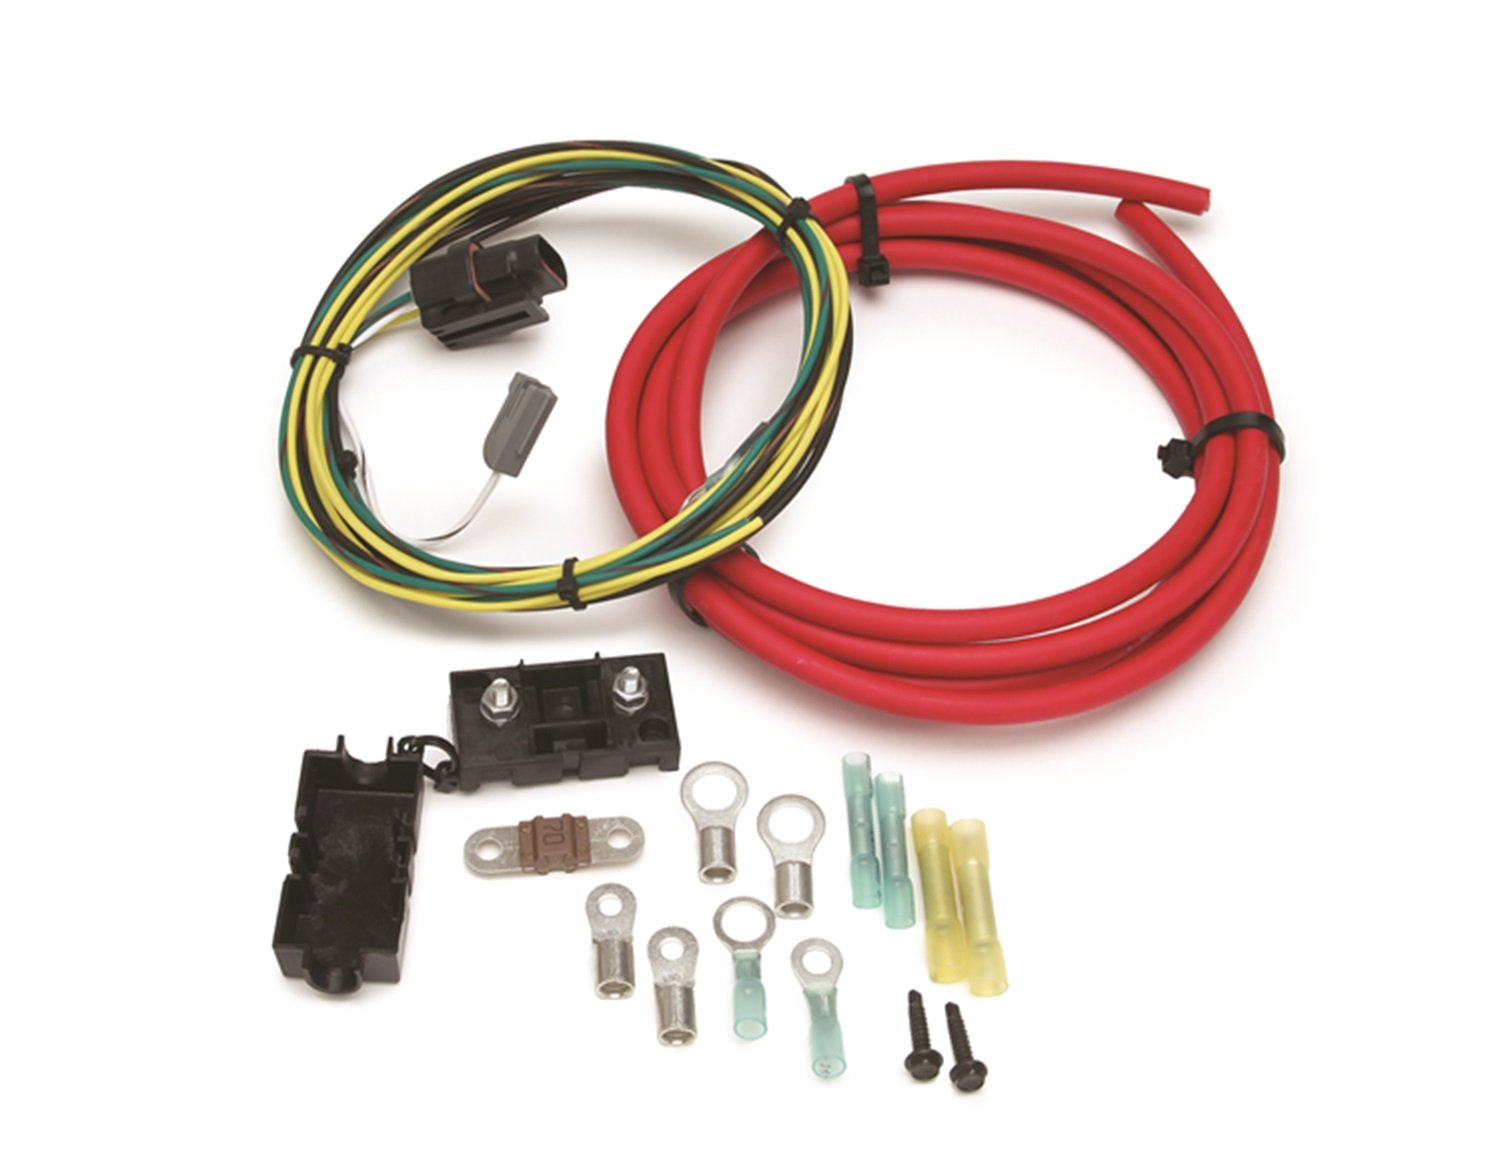 616mqwcqF6L._SL1500_ amazon com painless 30831 alternator automotive ford 3g alternator wiring harness at edmiracle.co